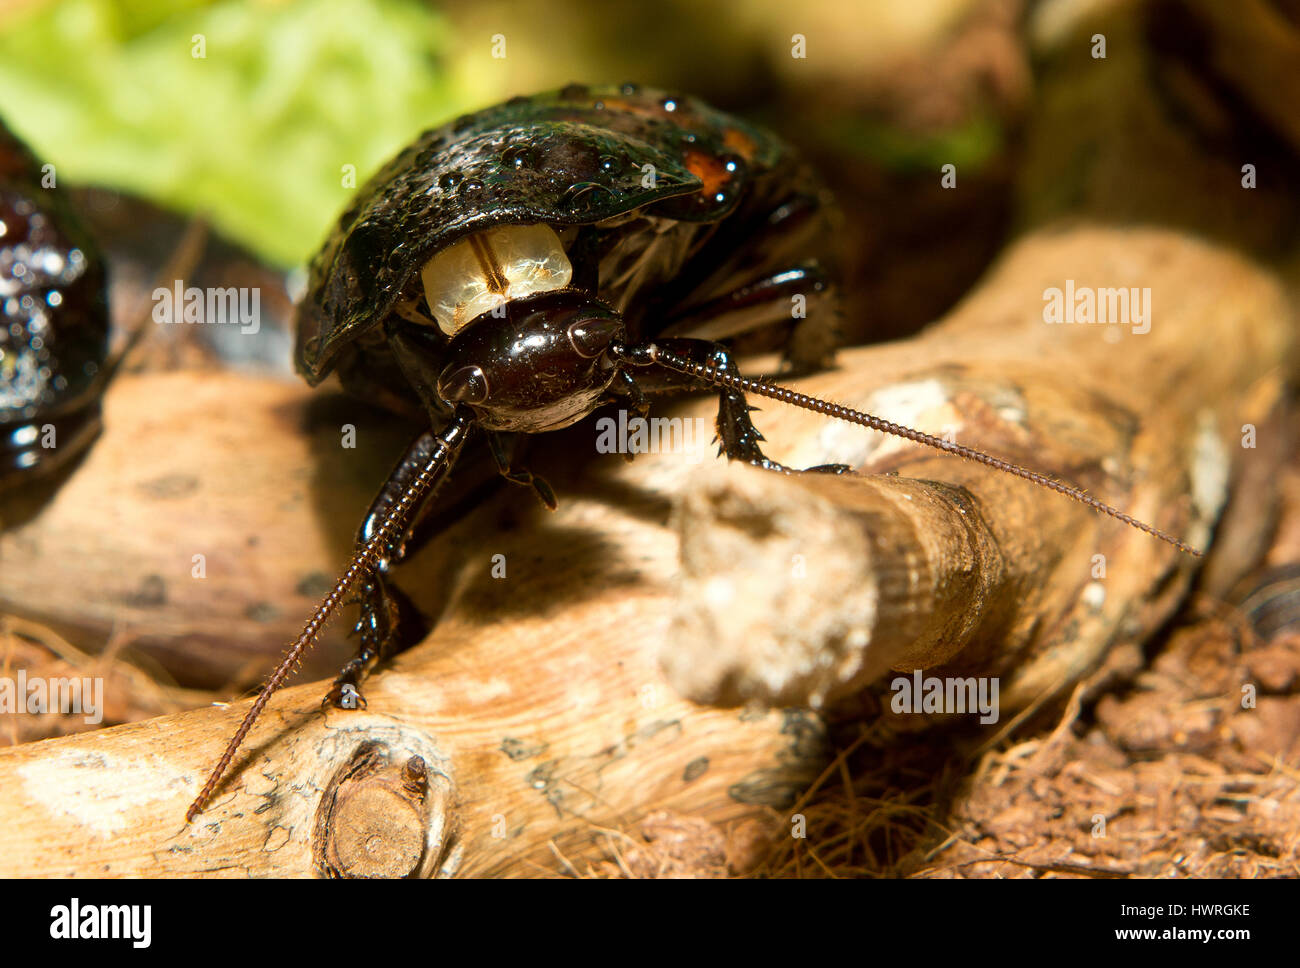 A Madagascar hissing cockroach on a branch - Stock Image